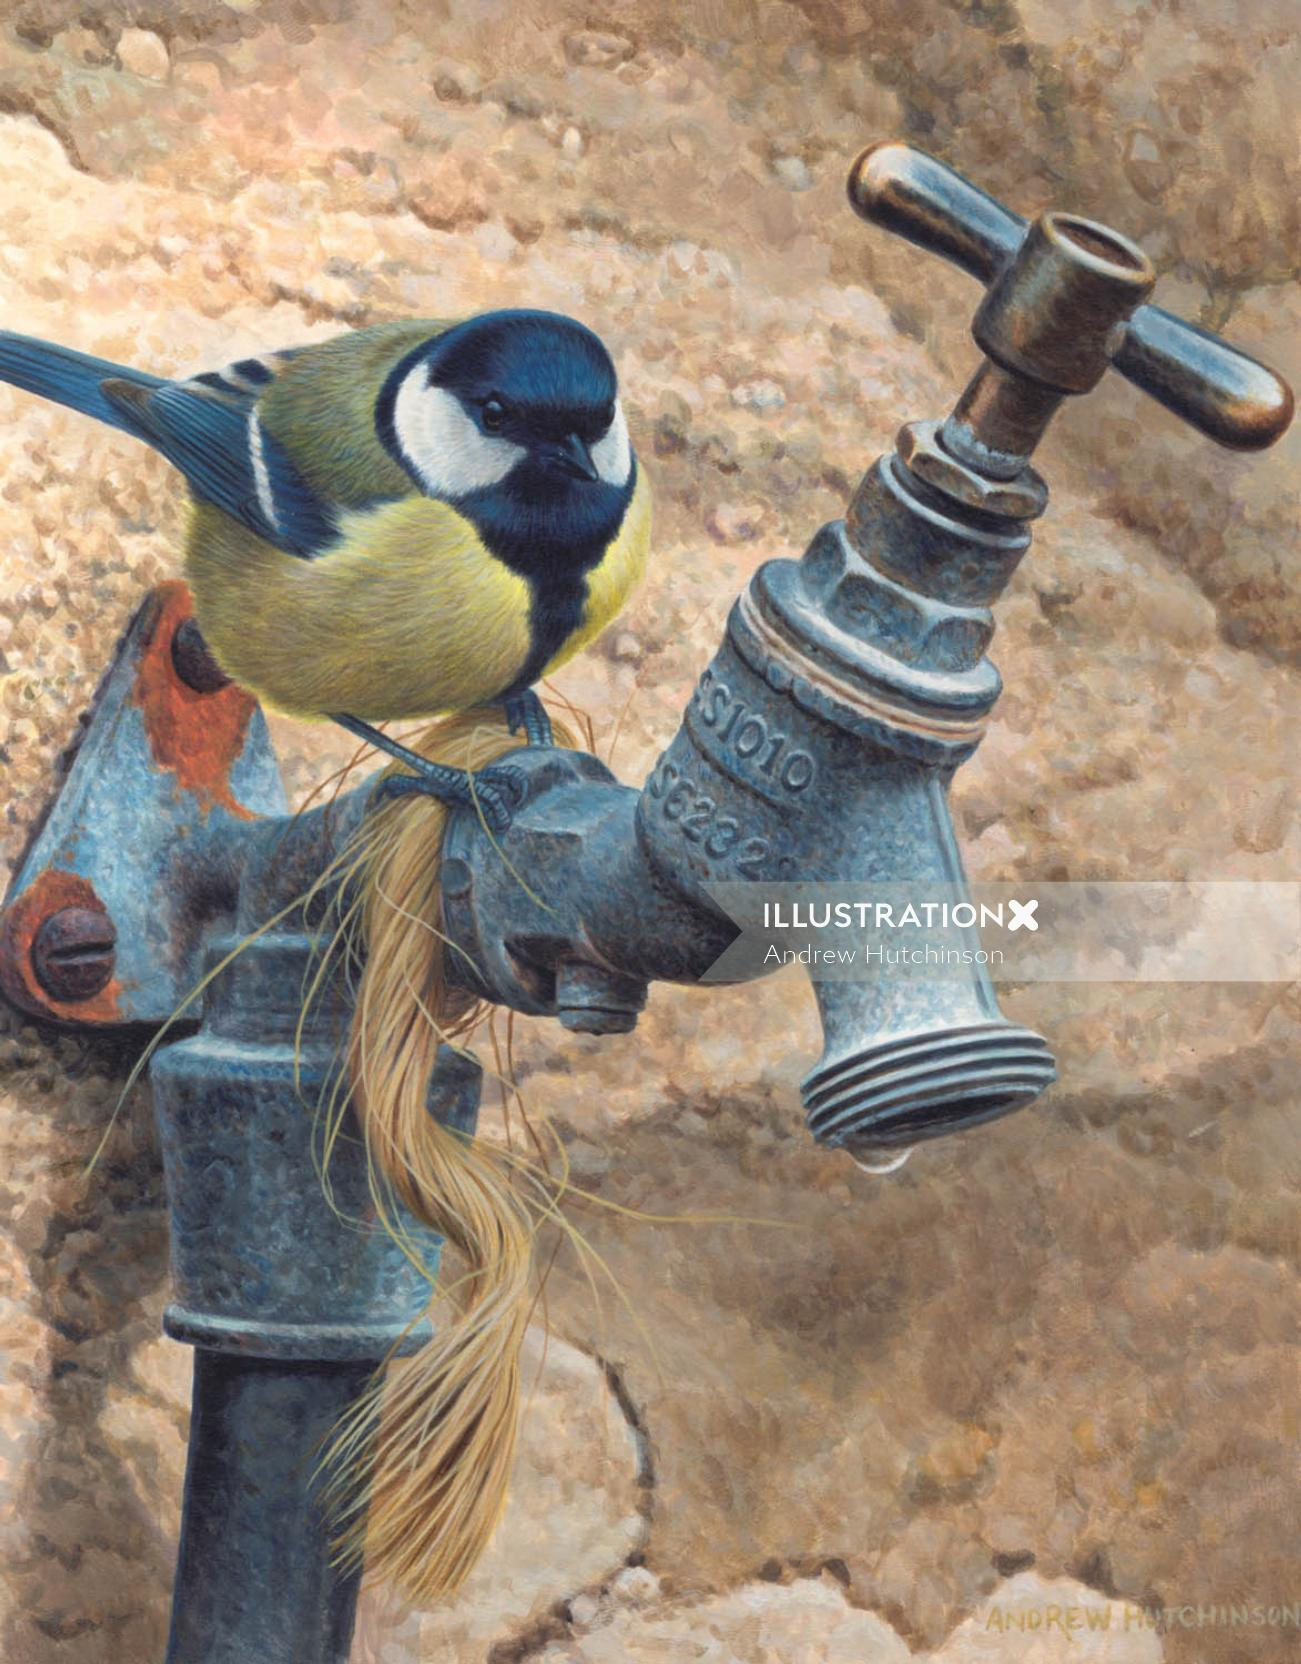 Illustration of great tit bird drinking water © Andrew Hutchinson